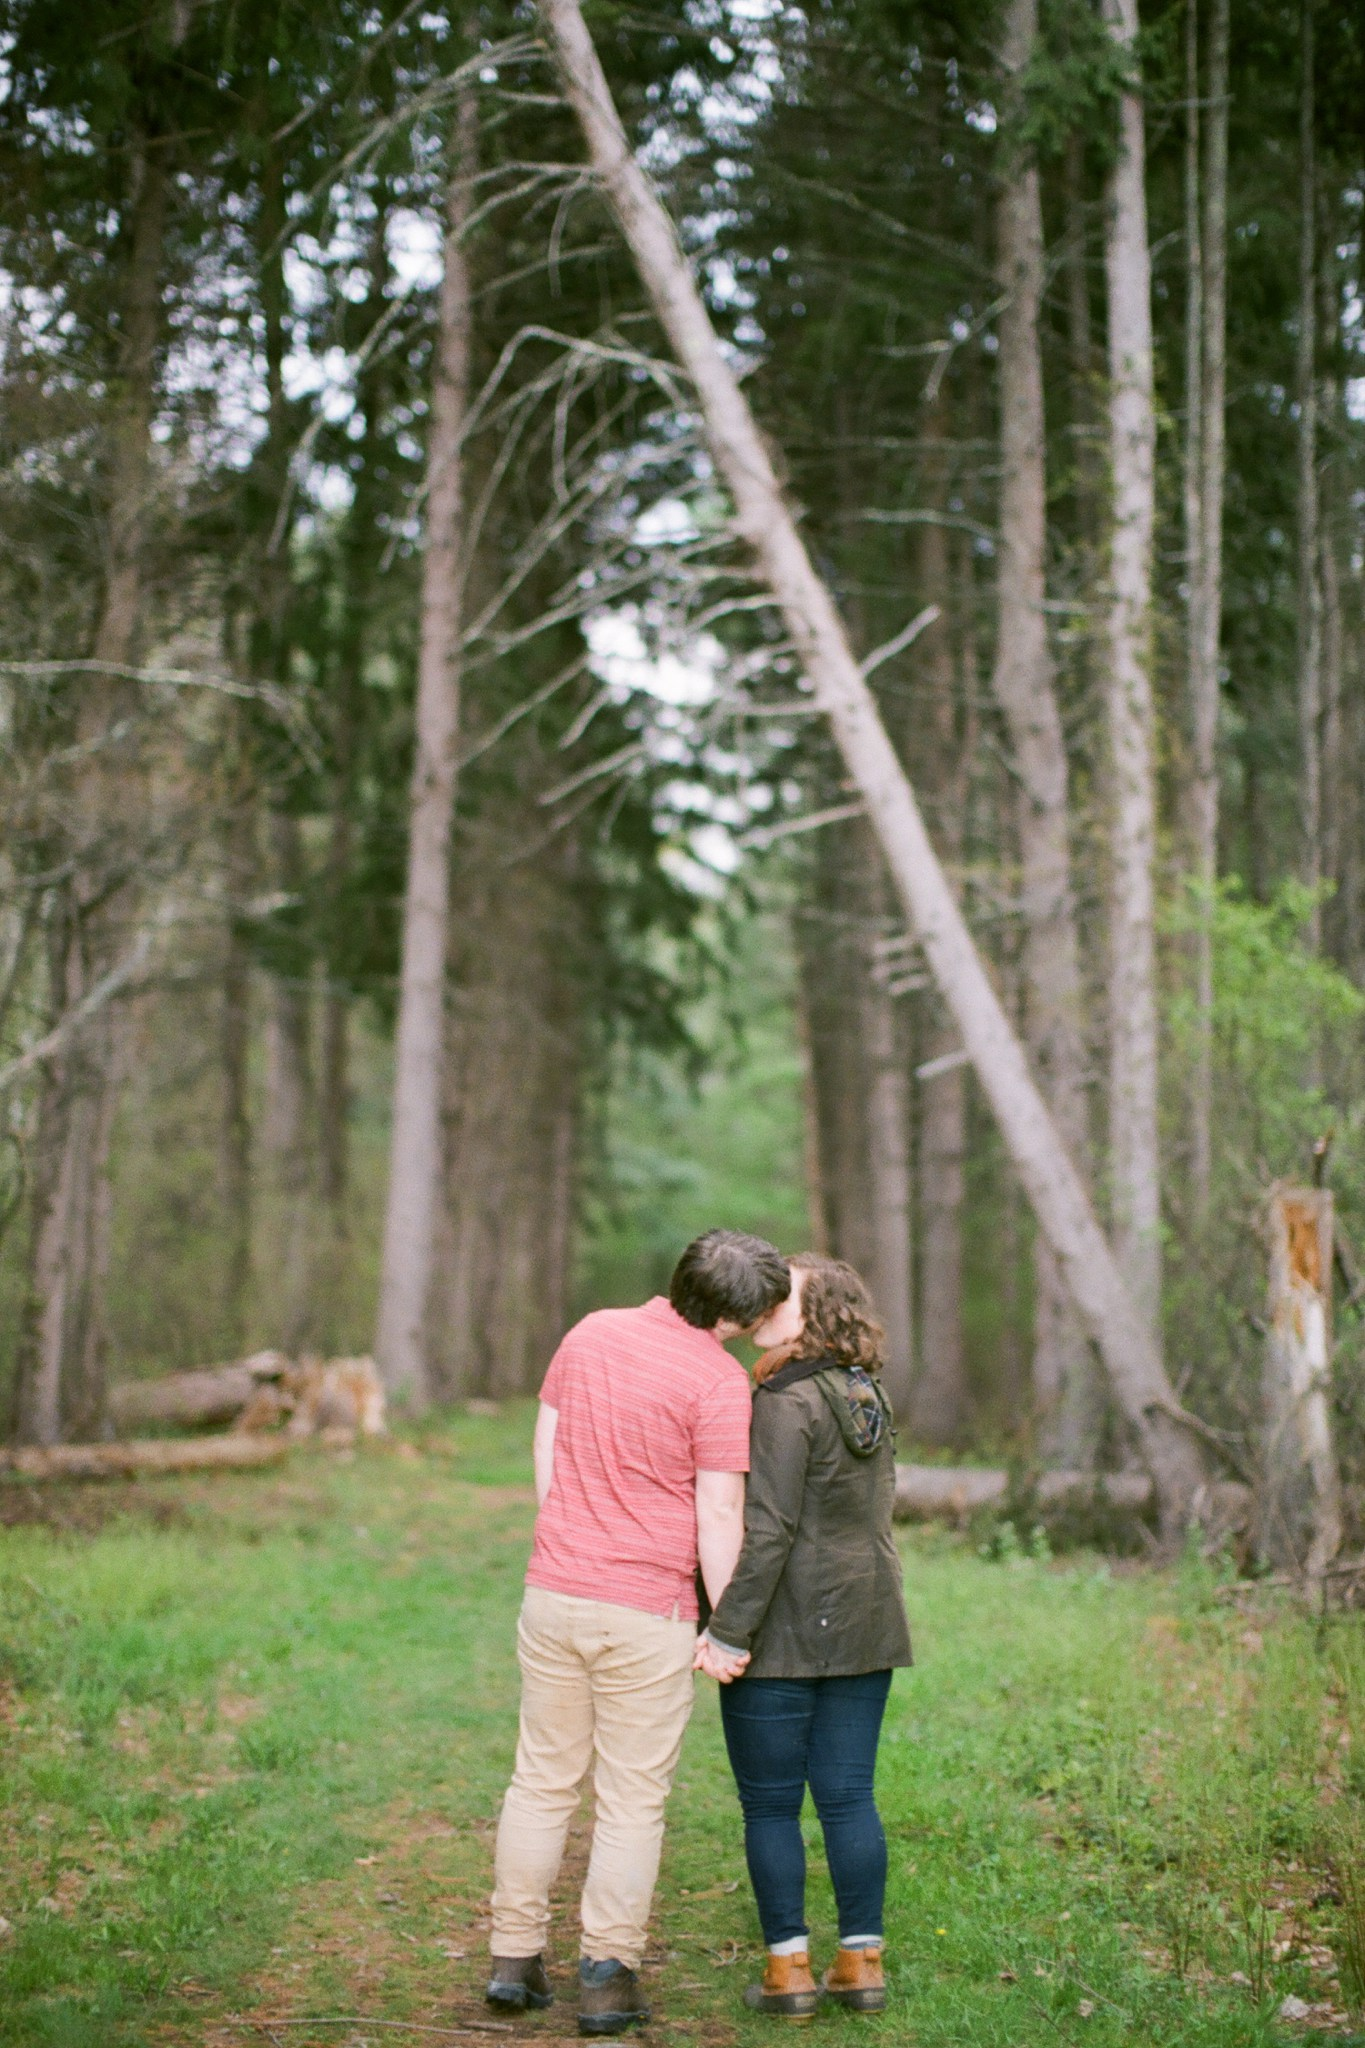 deborah_zoe_photography_engagement_session_0101.JPG